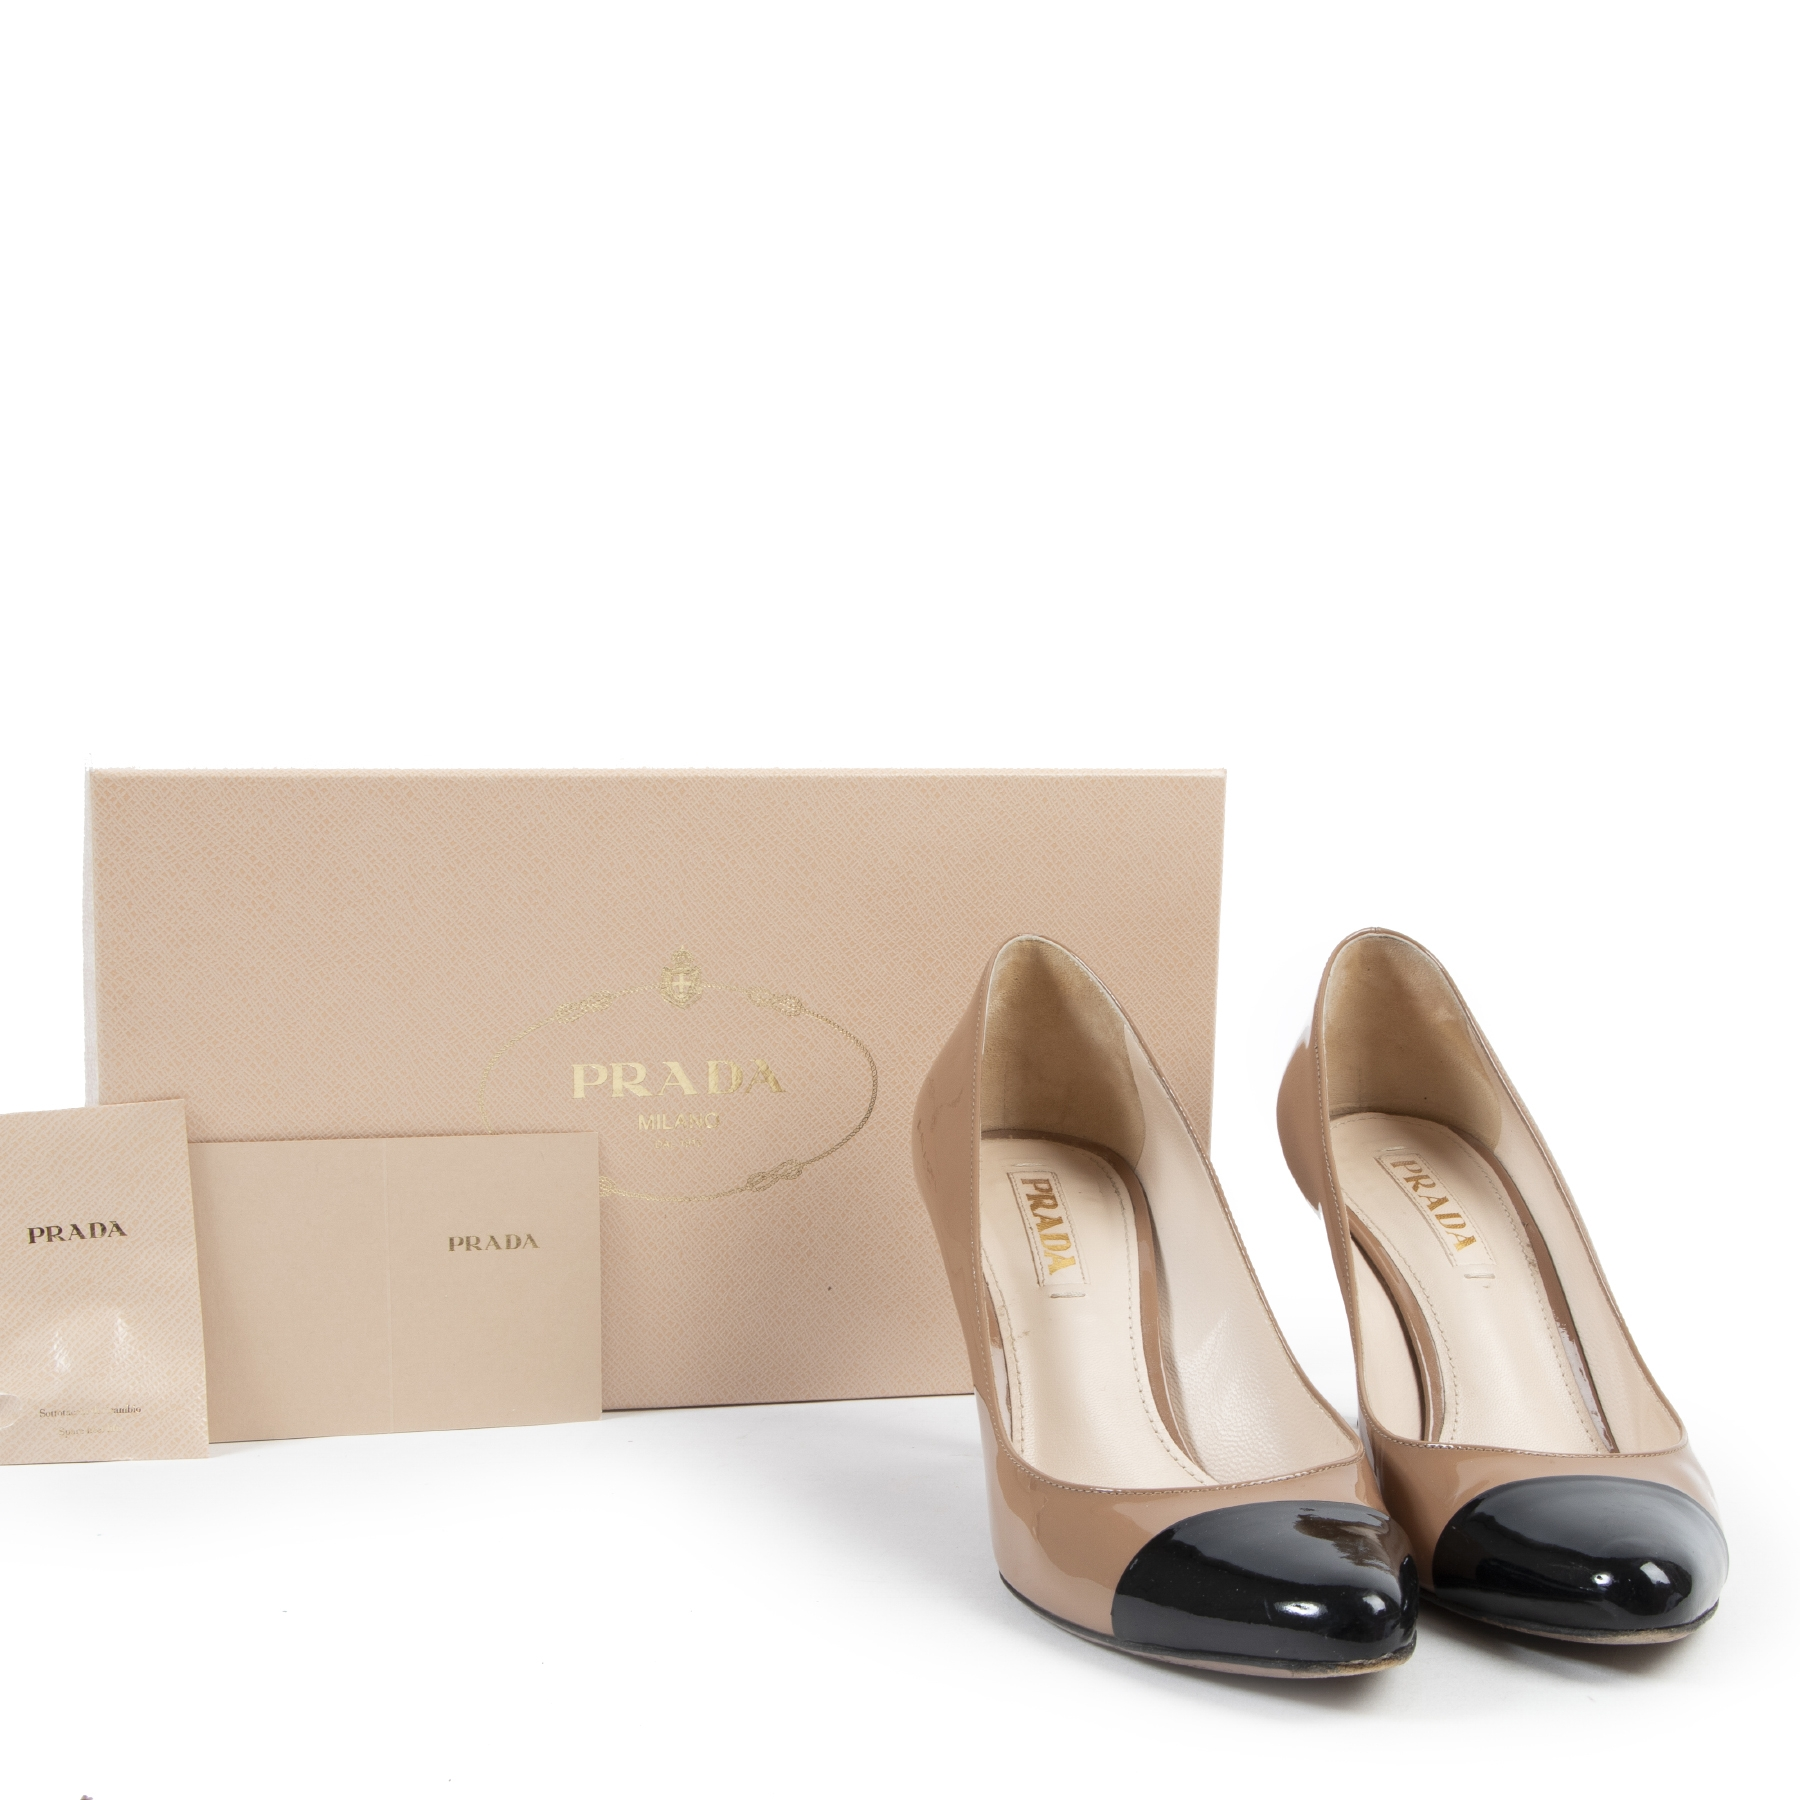 Buy authentic second hand Prada pumps with right price at LabelLOV.